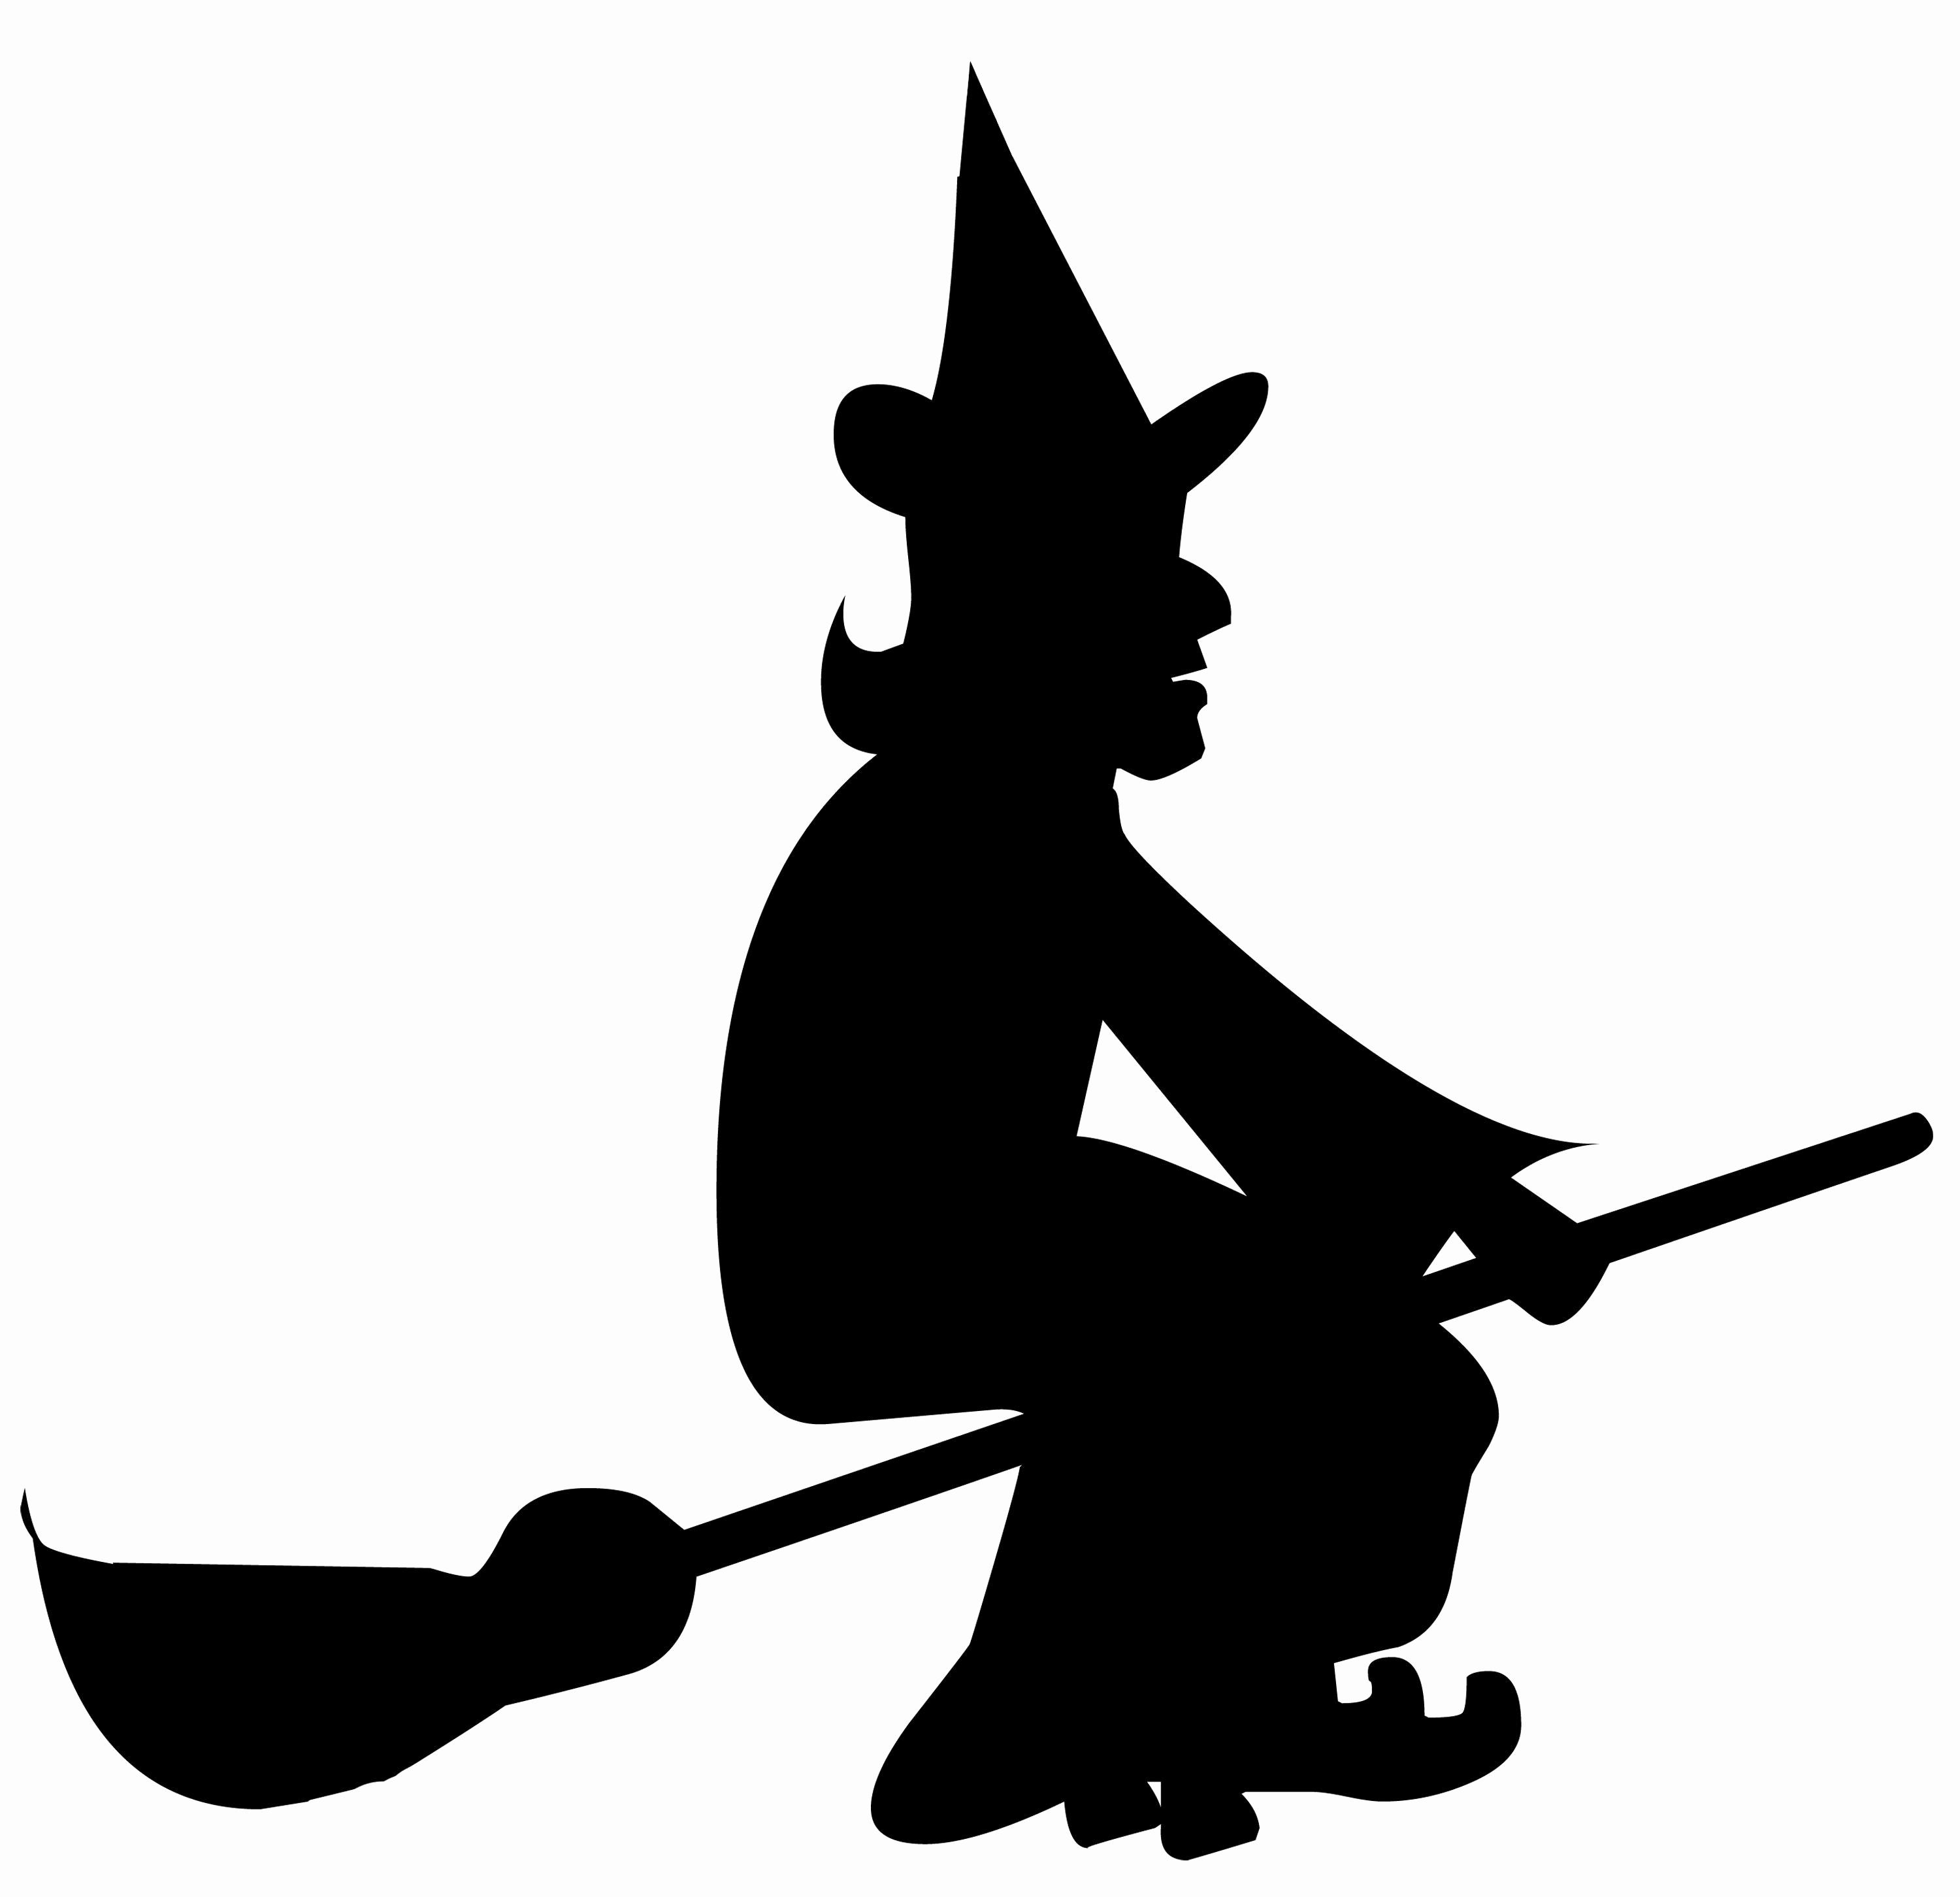 Printable Halloween Silhouette Templates At Getdrawings